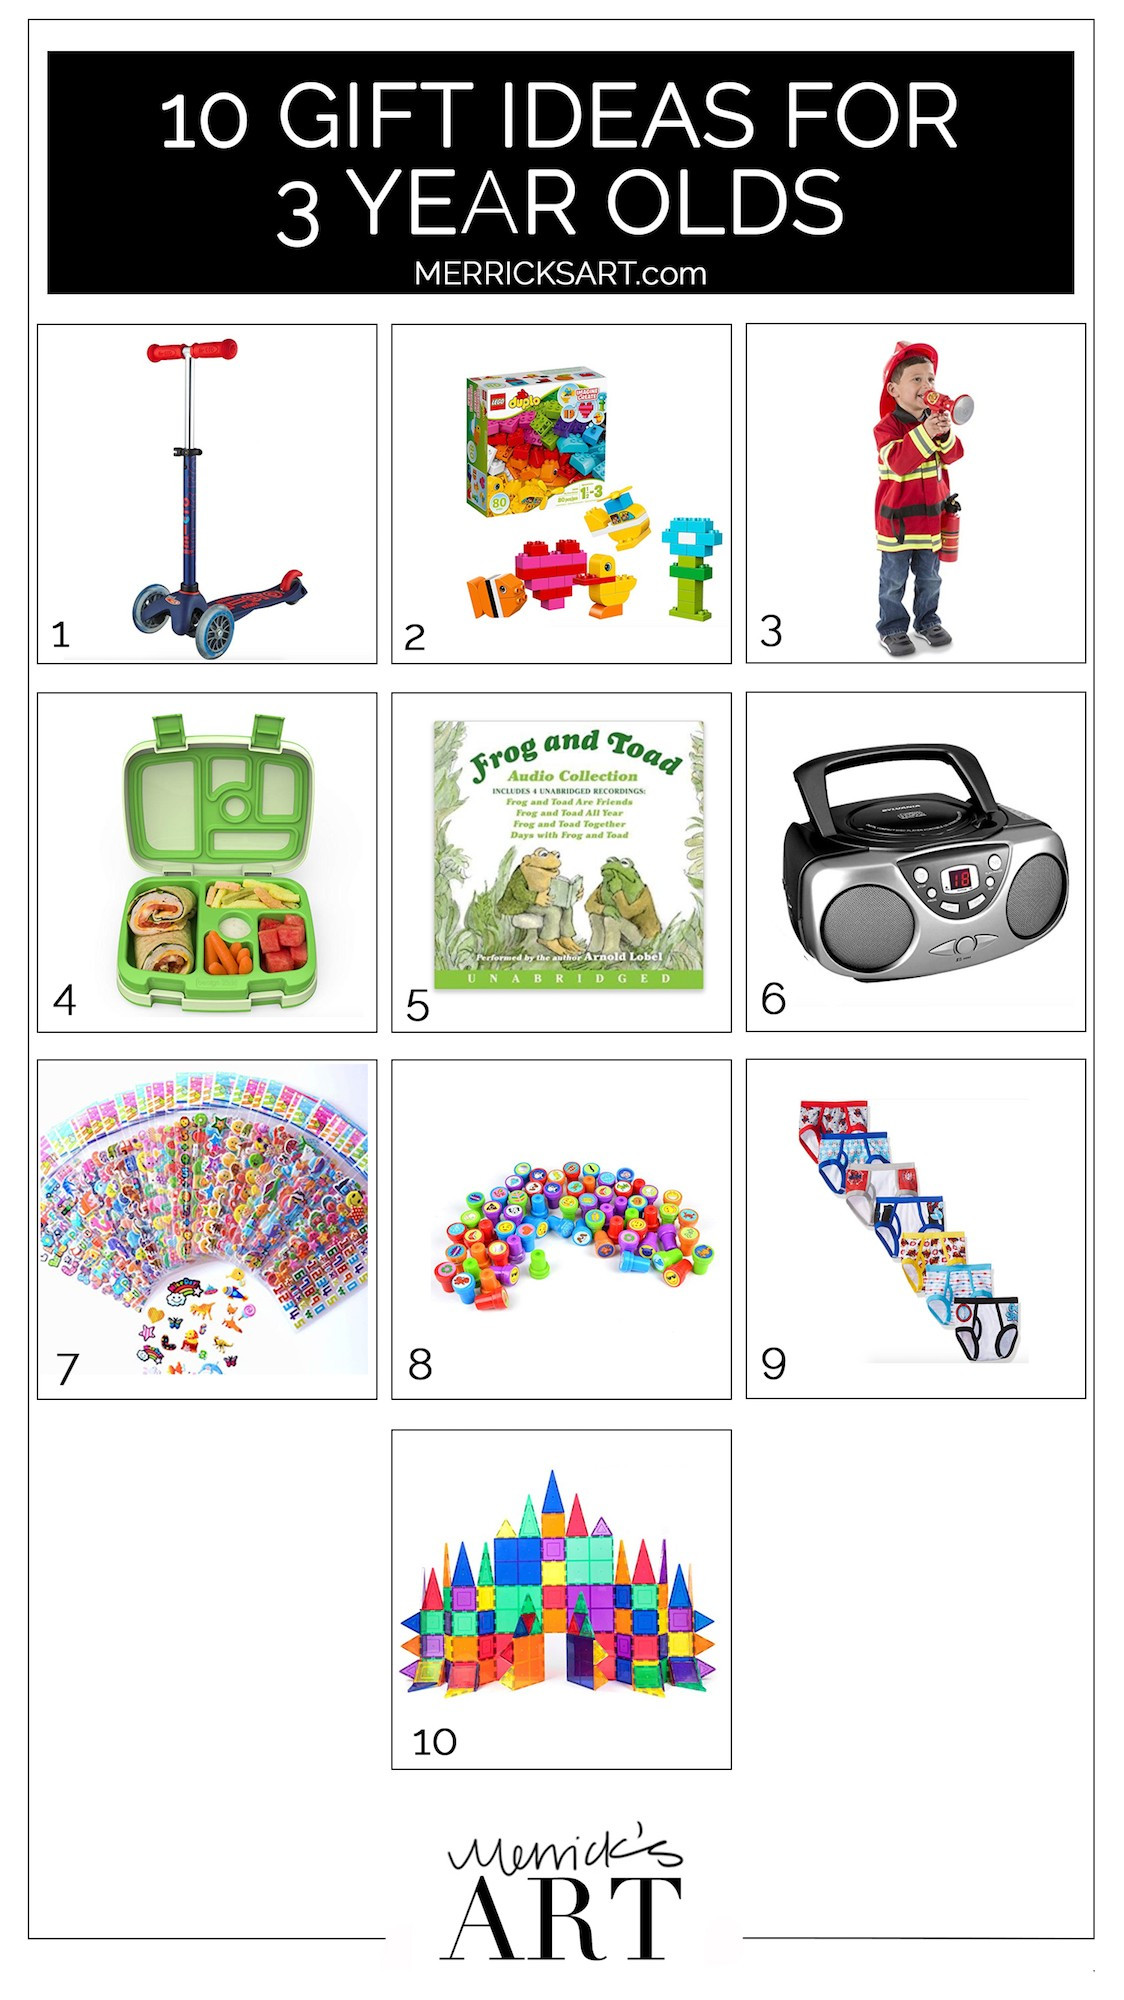 Gift Ideas For 3 Year Old Boys  10 Birthday Gift Ideas for a 3 Year Old Boy